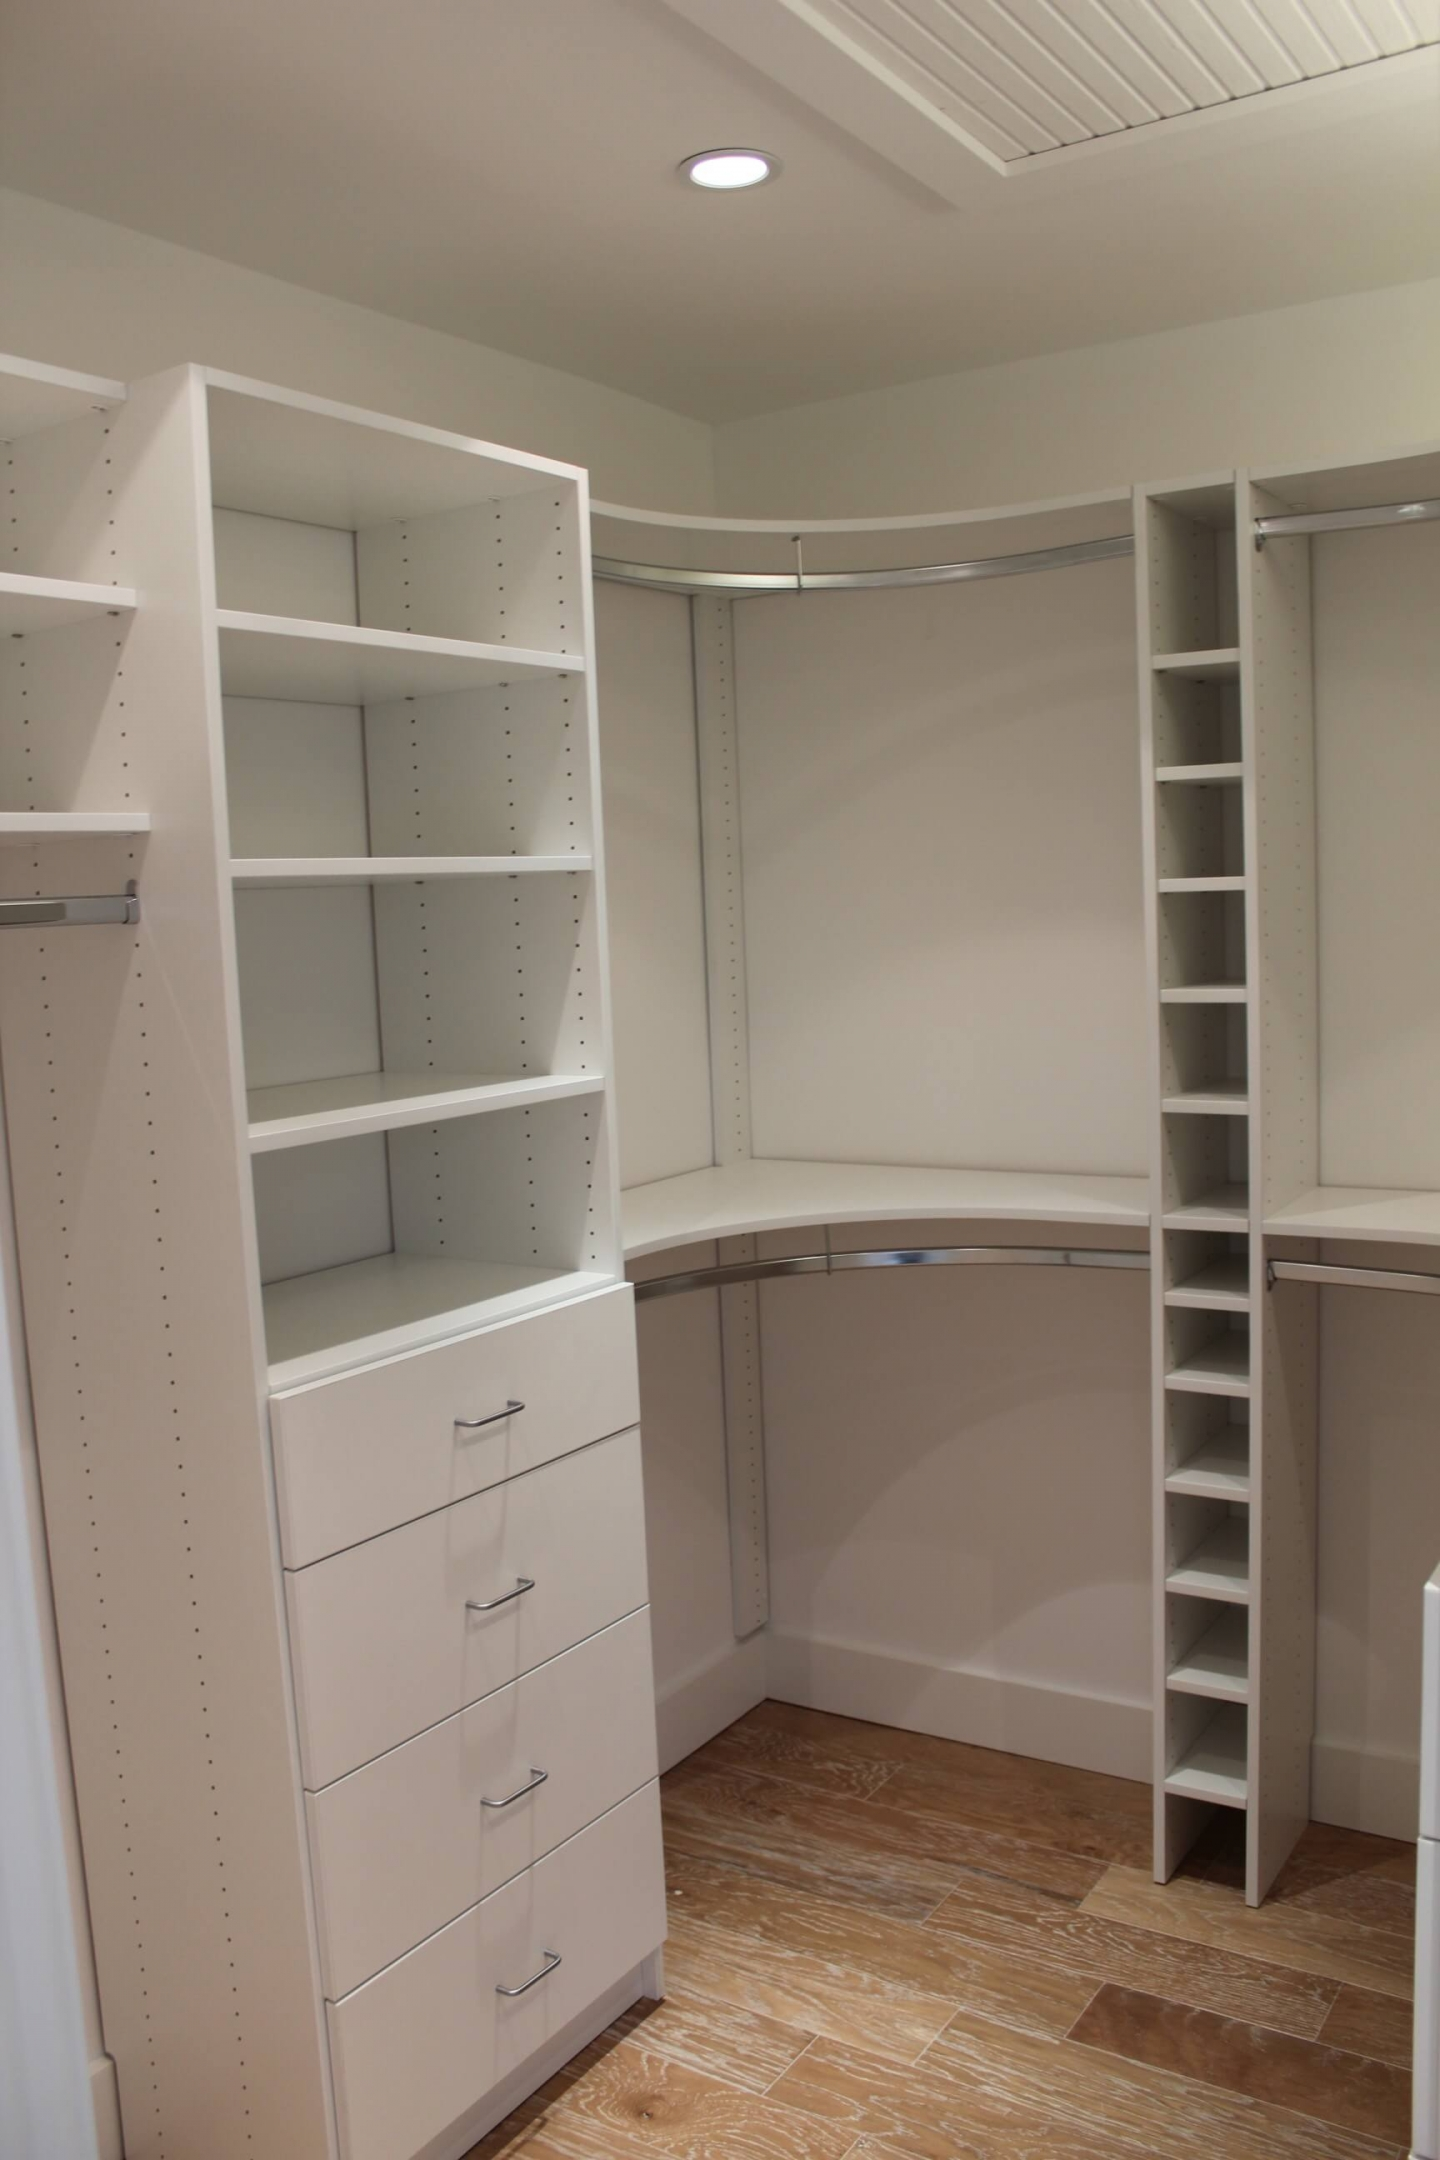 Built in closets and cabinetry